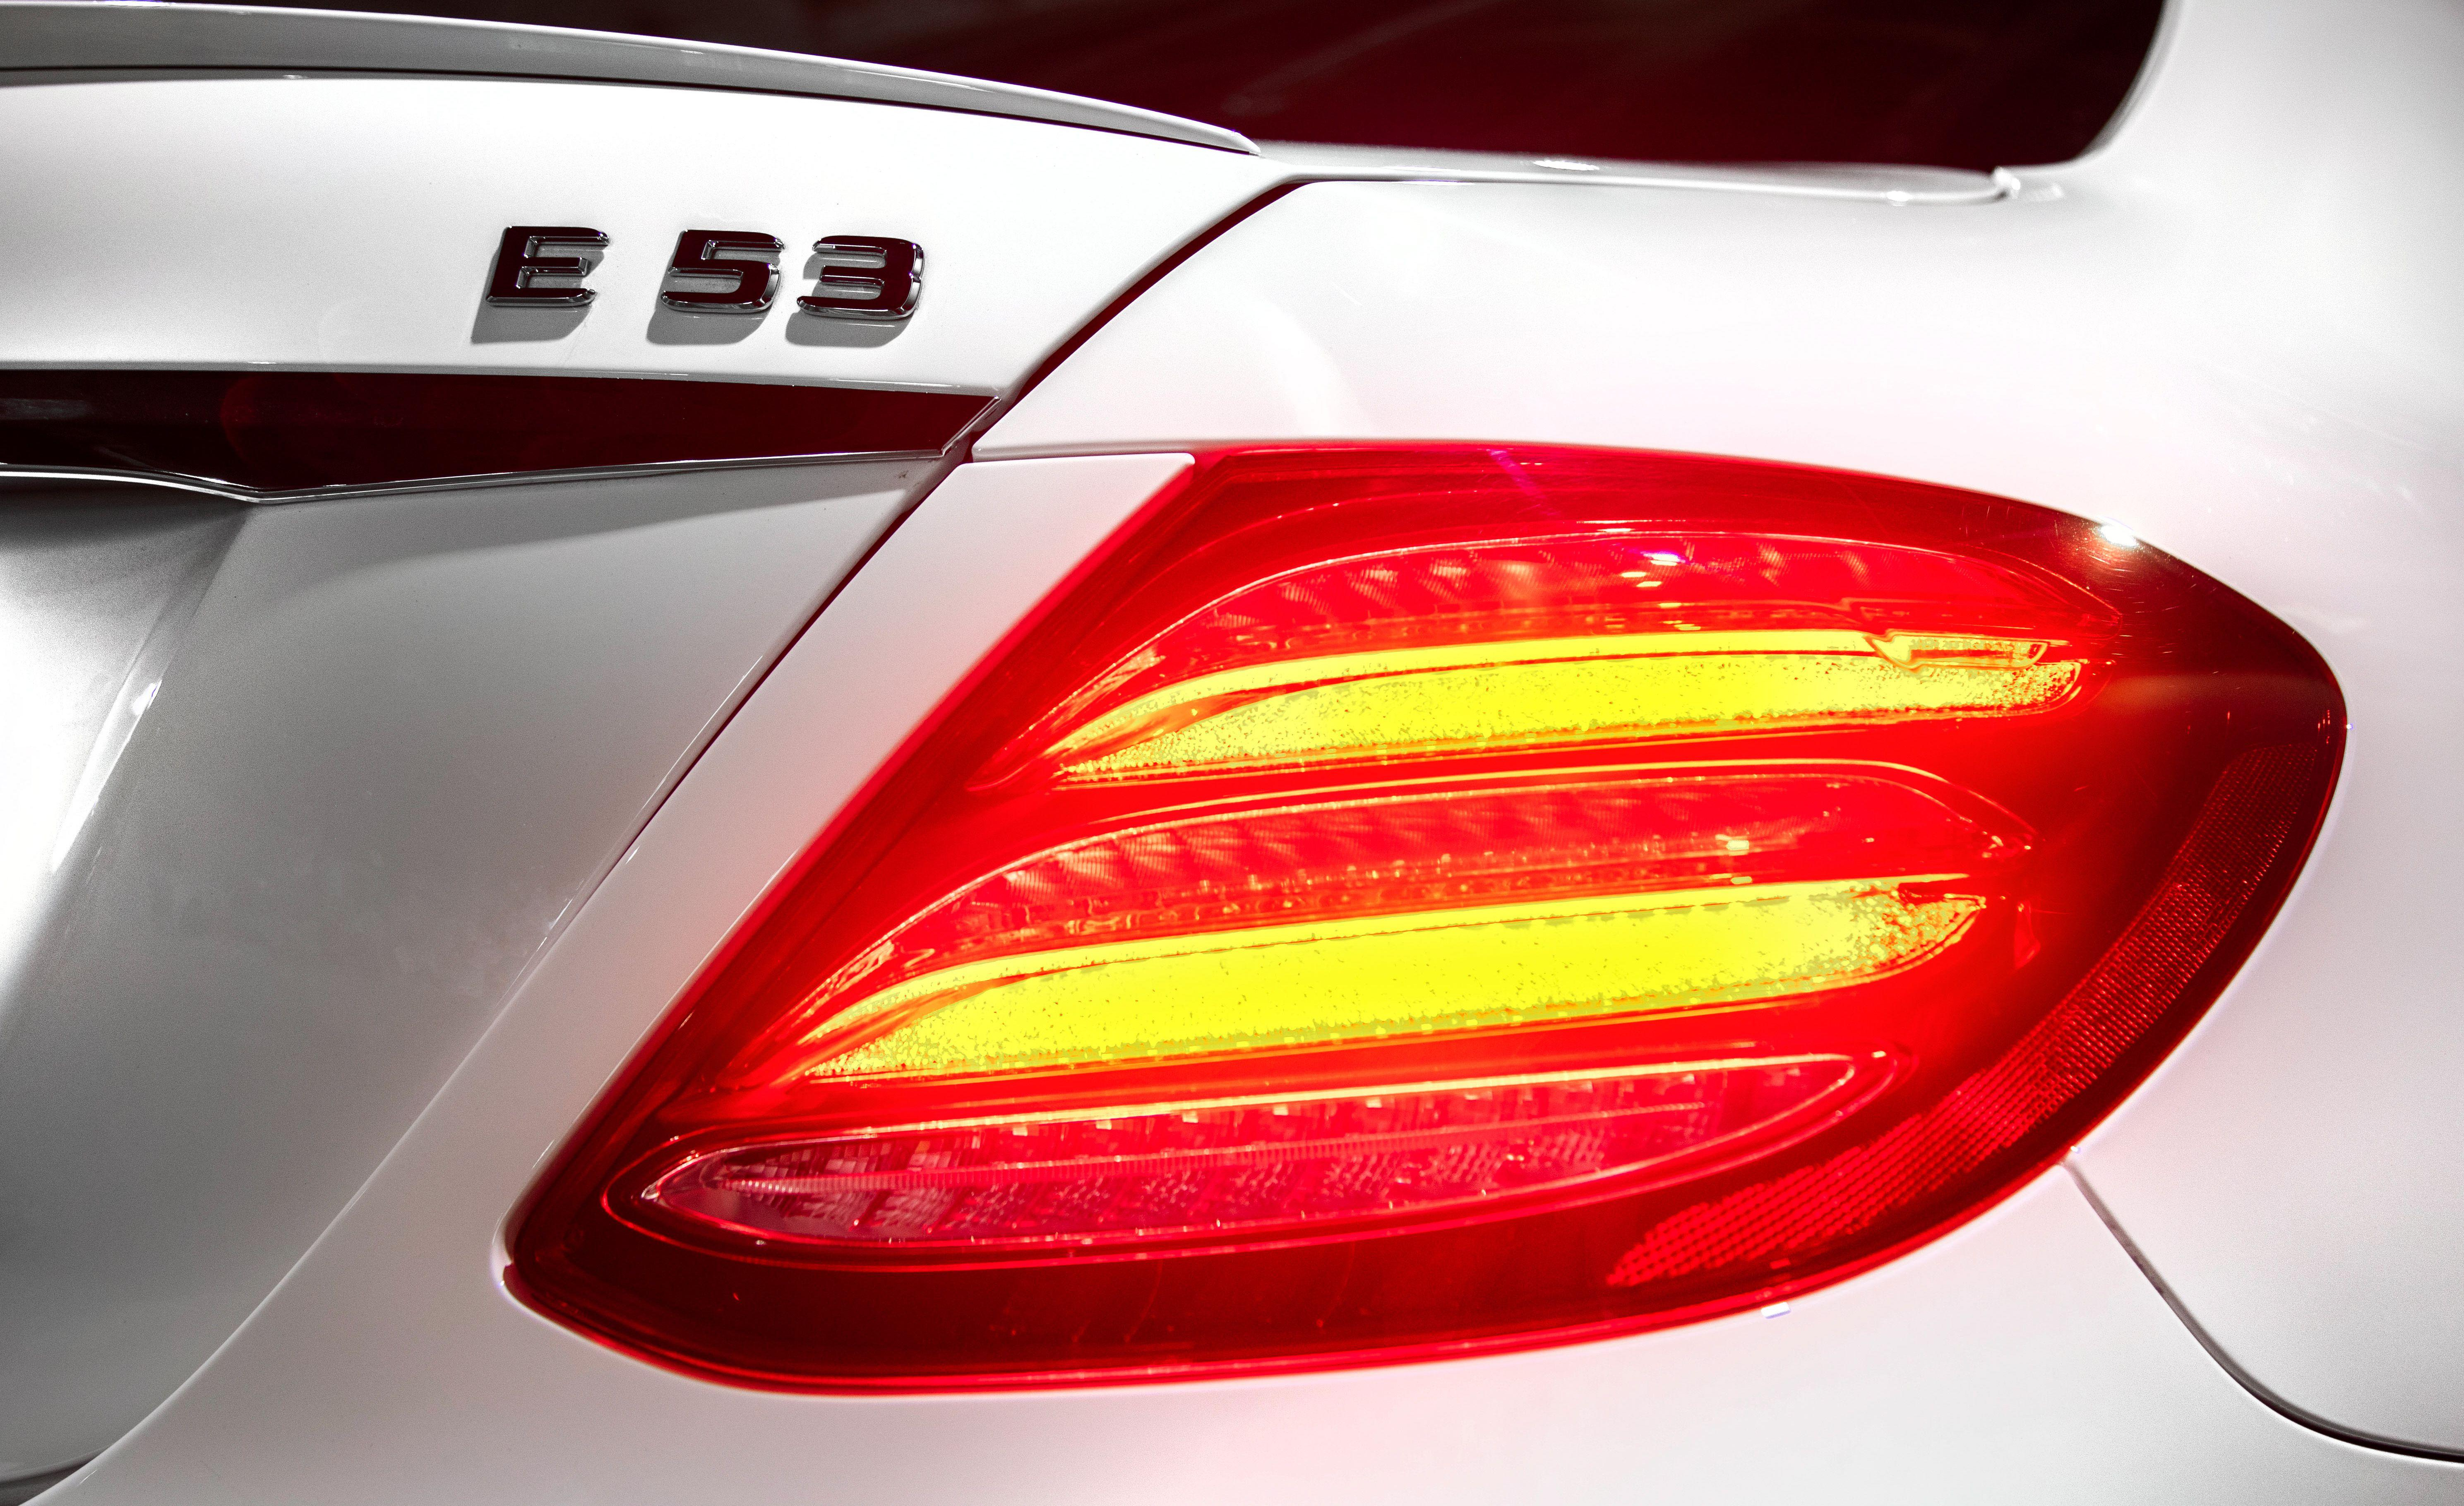 """<p>Although <a href=""""https://www.caranddriver.com/mercedes-amg/e53"""" rel=""""nofollow noopener"""" target=""""_blank"""" data-ylk=""""slk:the 2019 Mercedes-AMG E53"""" class=""""link rapid-noclick-resp"""">the 2019 Mercedes-AMG E53</a> sedan isn't shy about announcing its AMG pedigree, it leads a more nuanced existence. With <a href=""""https://www.caranddriver.com/mercedes-amg/gt53"""" rel=""""nofollow noopener"""" target=""""_blank"""" data-ylk=""""slk:AMG's GT53 four-door"""" class=""""link rapid-noclick-resp"""">AMG's GT53 four-door</a> and the single-minded AMG GT63 with its 577-hp twin-turbo V-8 on offer to indulge four-door buyers seeking performance above all else, the E53 sedan, like it's <a href=""""https://www.caranddriver.com/reviews/a24480262/2019-mercedes-amg-e53-4matic-coupe-by-the-numbers/"""" rel=""""nofollow noopener"""" target=""""_blank"""" data-ylk=""""slk:E53 coupe"""" class=""""link rapid-noclick-resp"""">E53 coupe</a> and E53 cabriolet siblings, is free to focus on easing some heightened excitement into the traditional E-class social structure.</p>"""